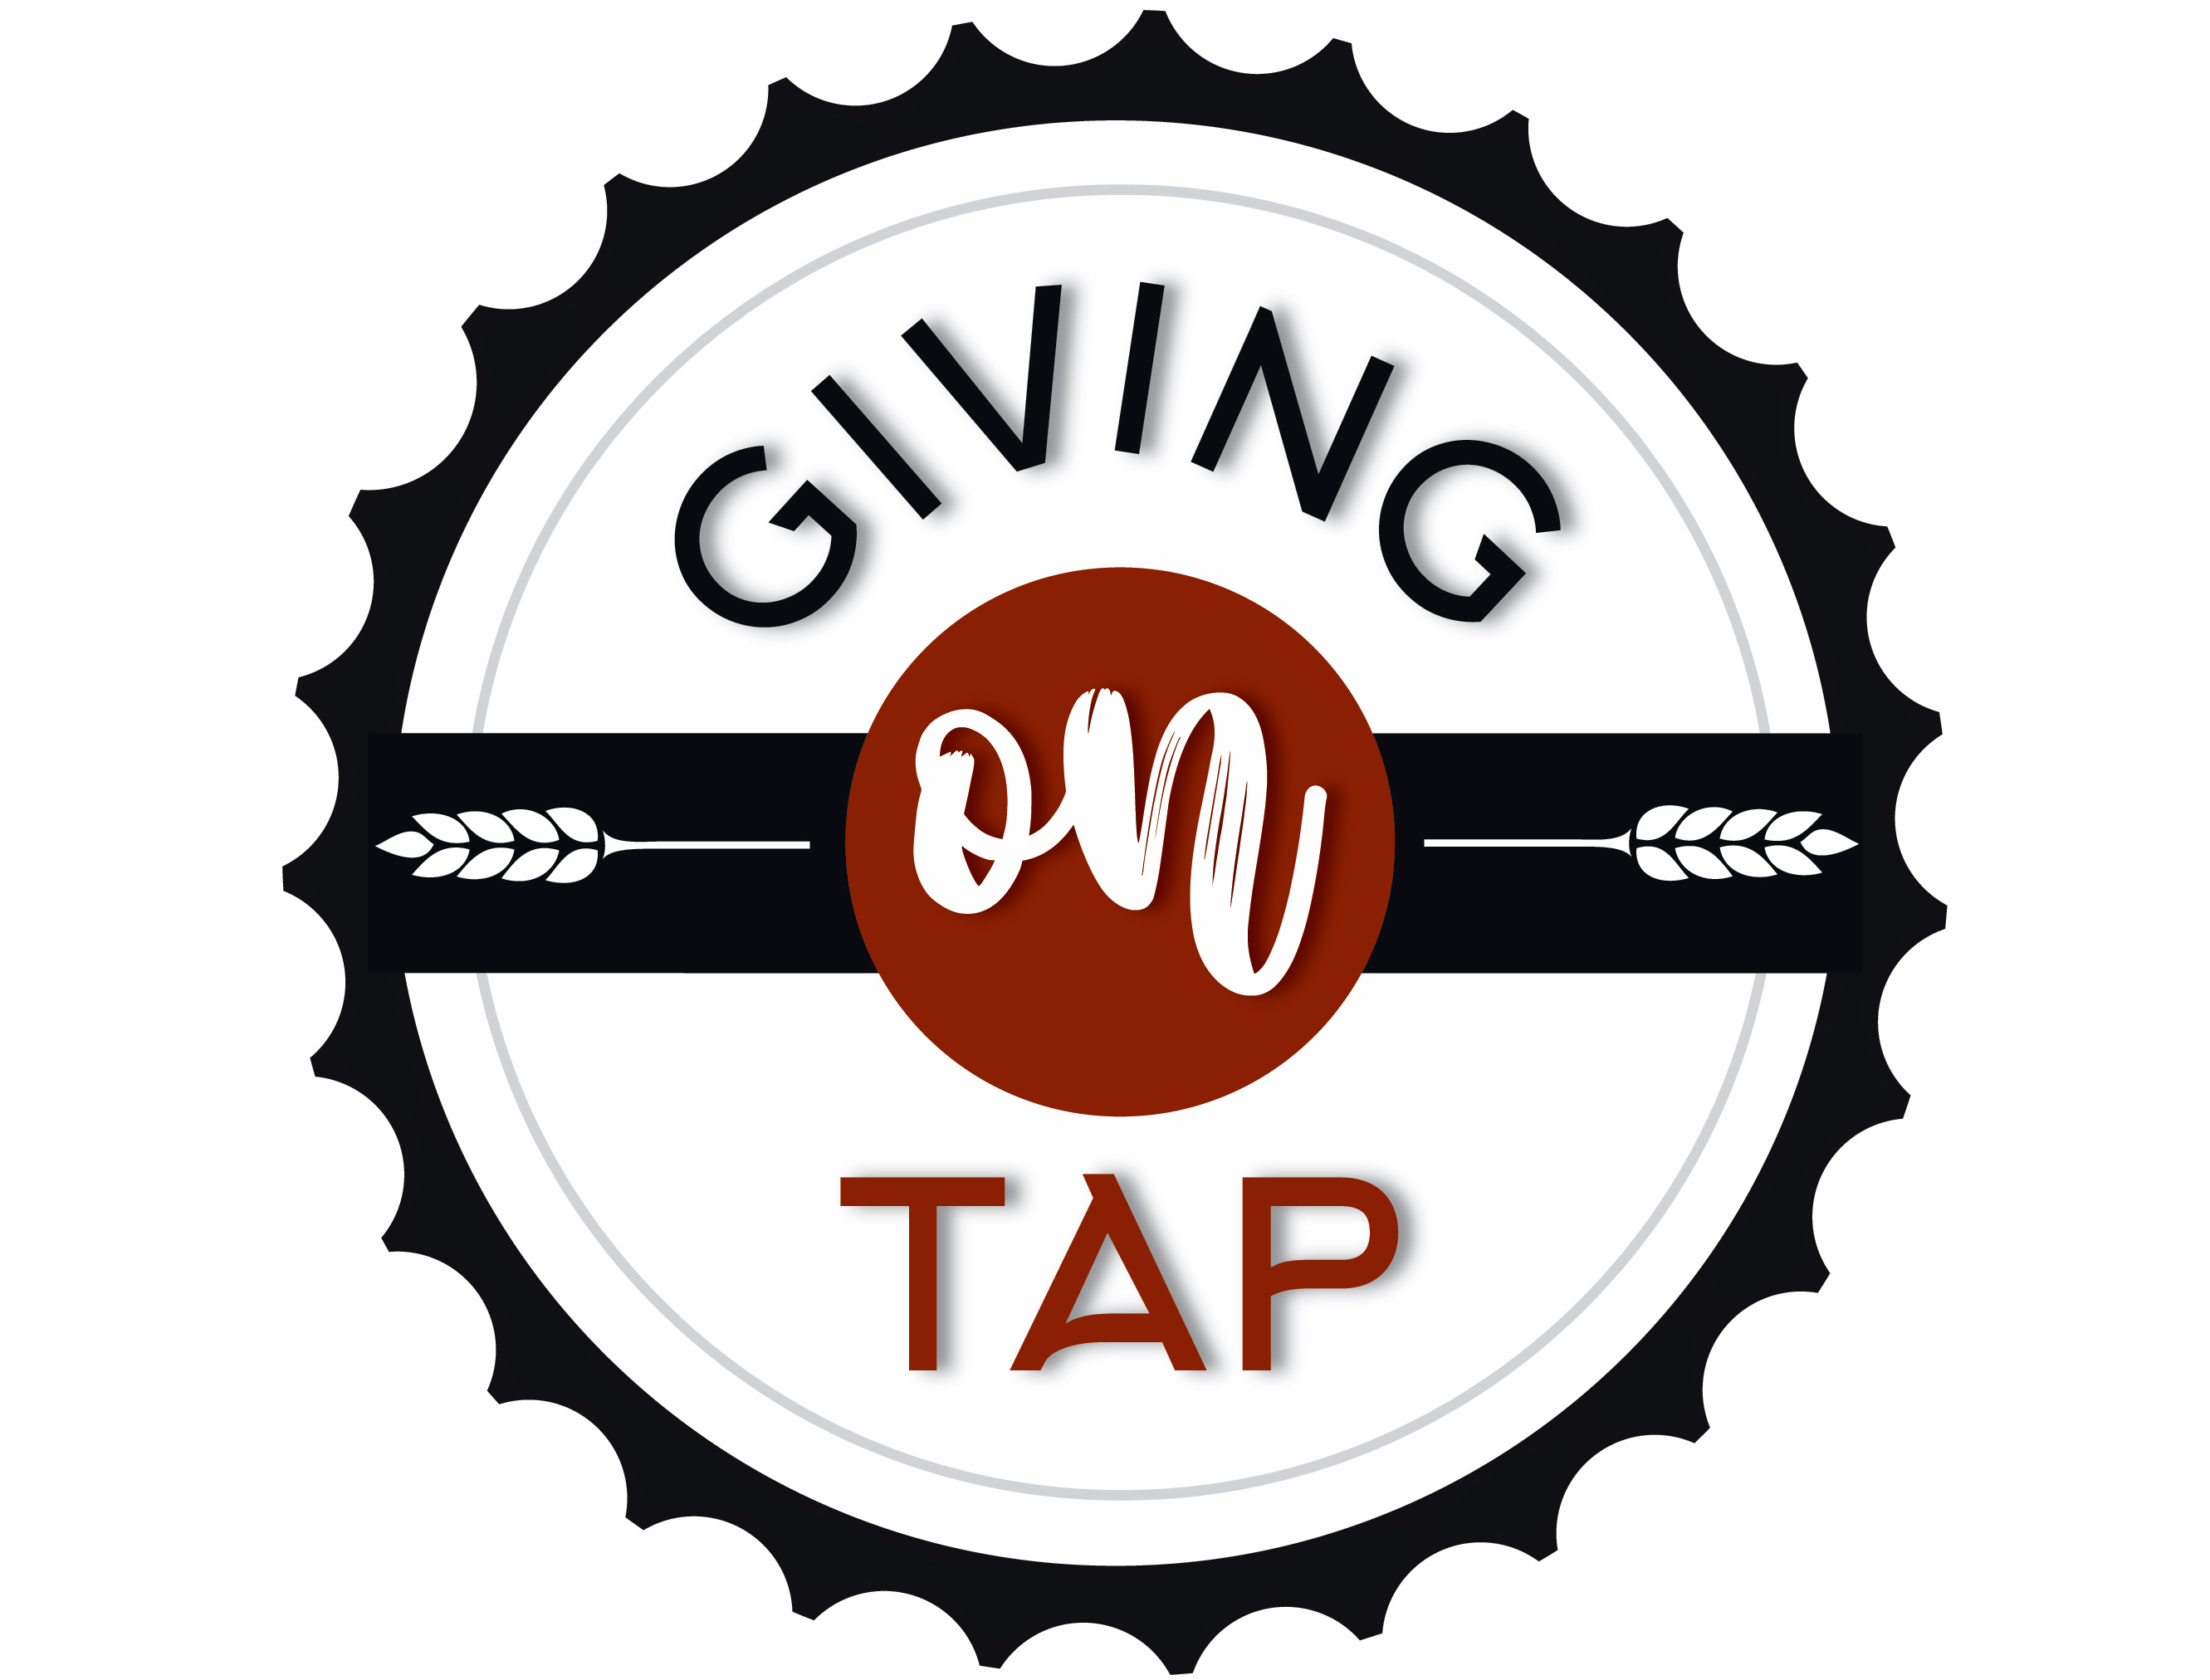 Giving On Tap - November 16, 2017 - Meals On Wheels Delaware